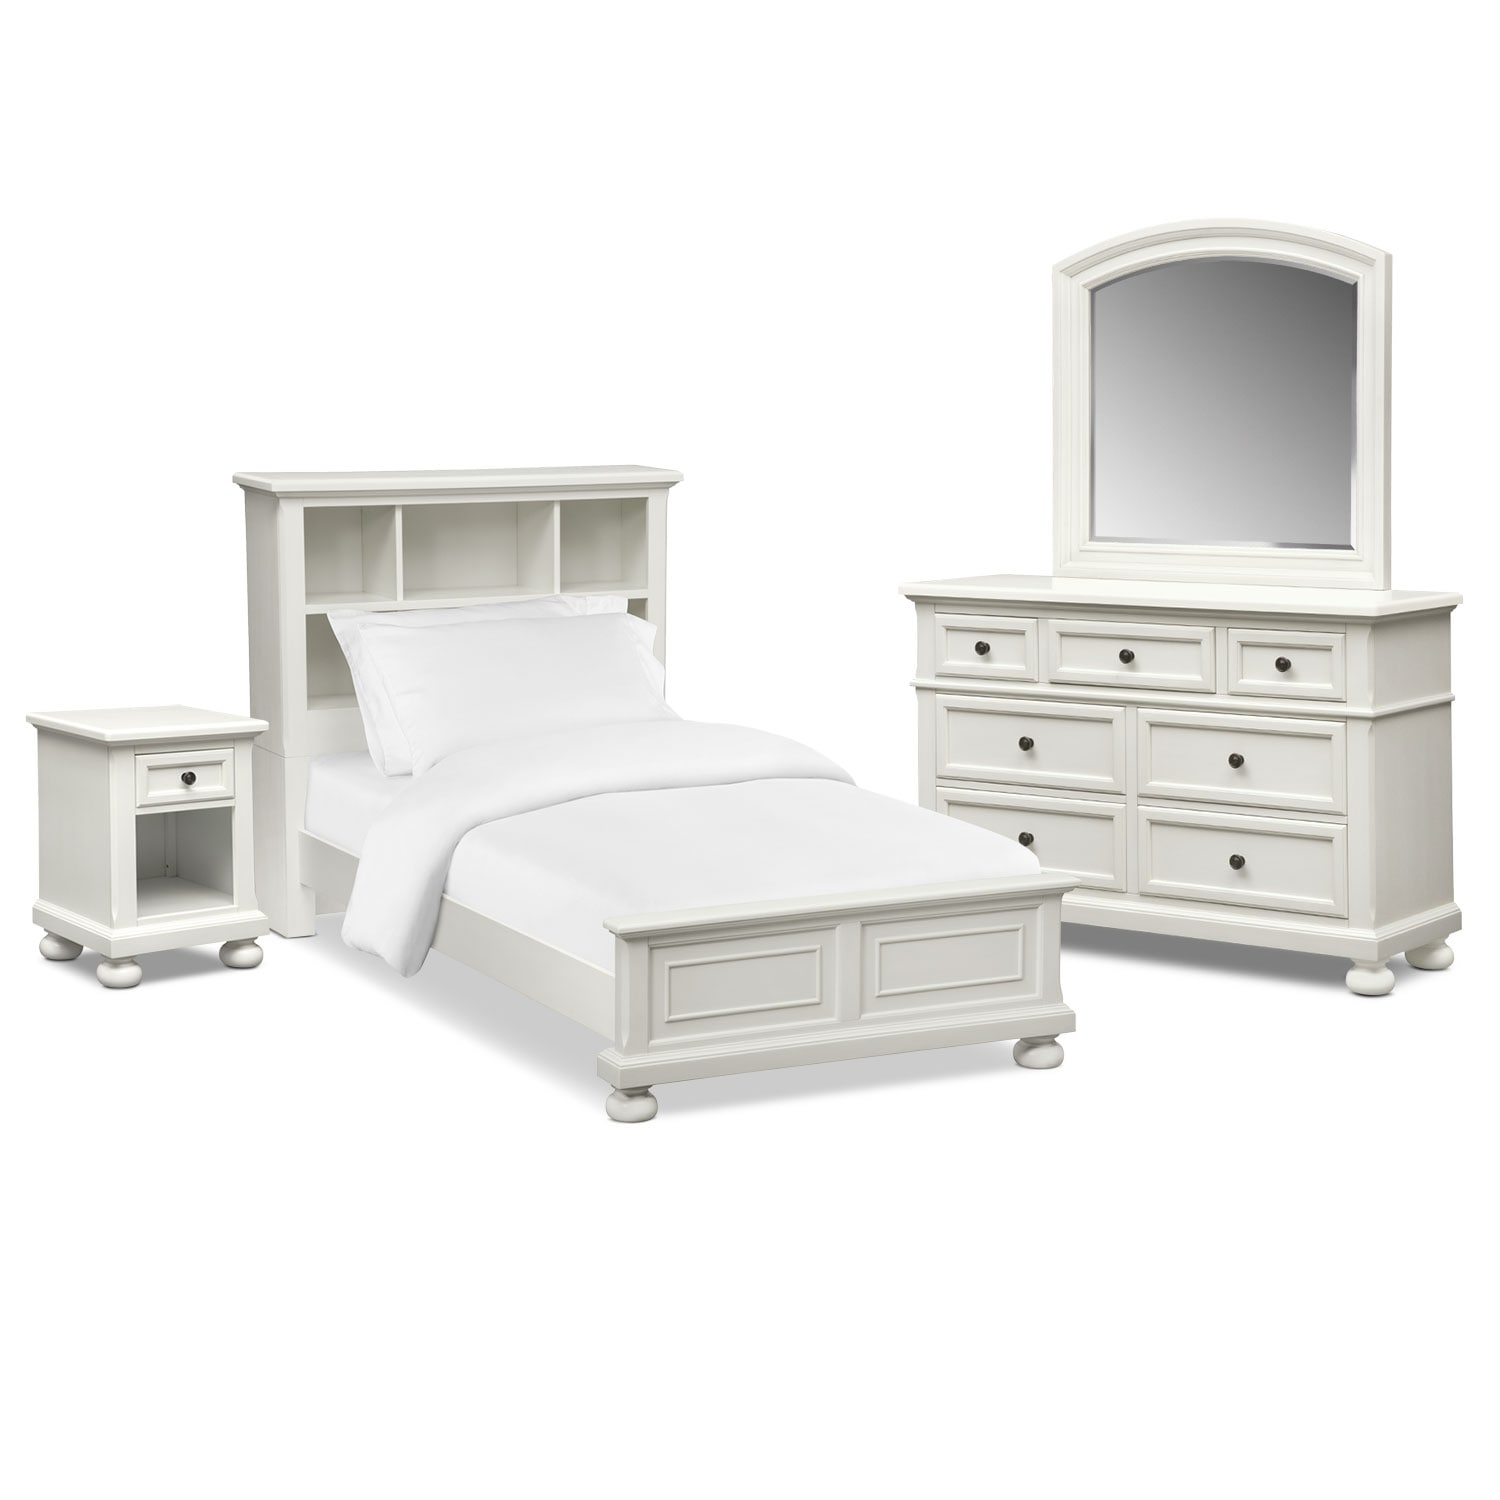 Hanover youth 6 piece twin bookcase bedroom set with for White bedroom set with storage